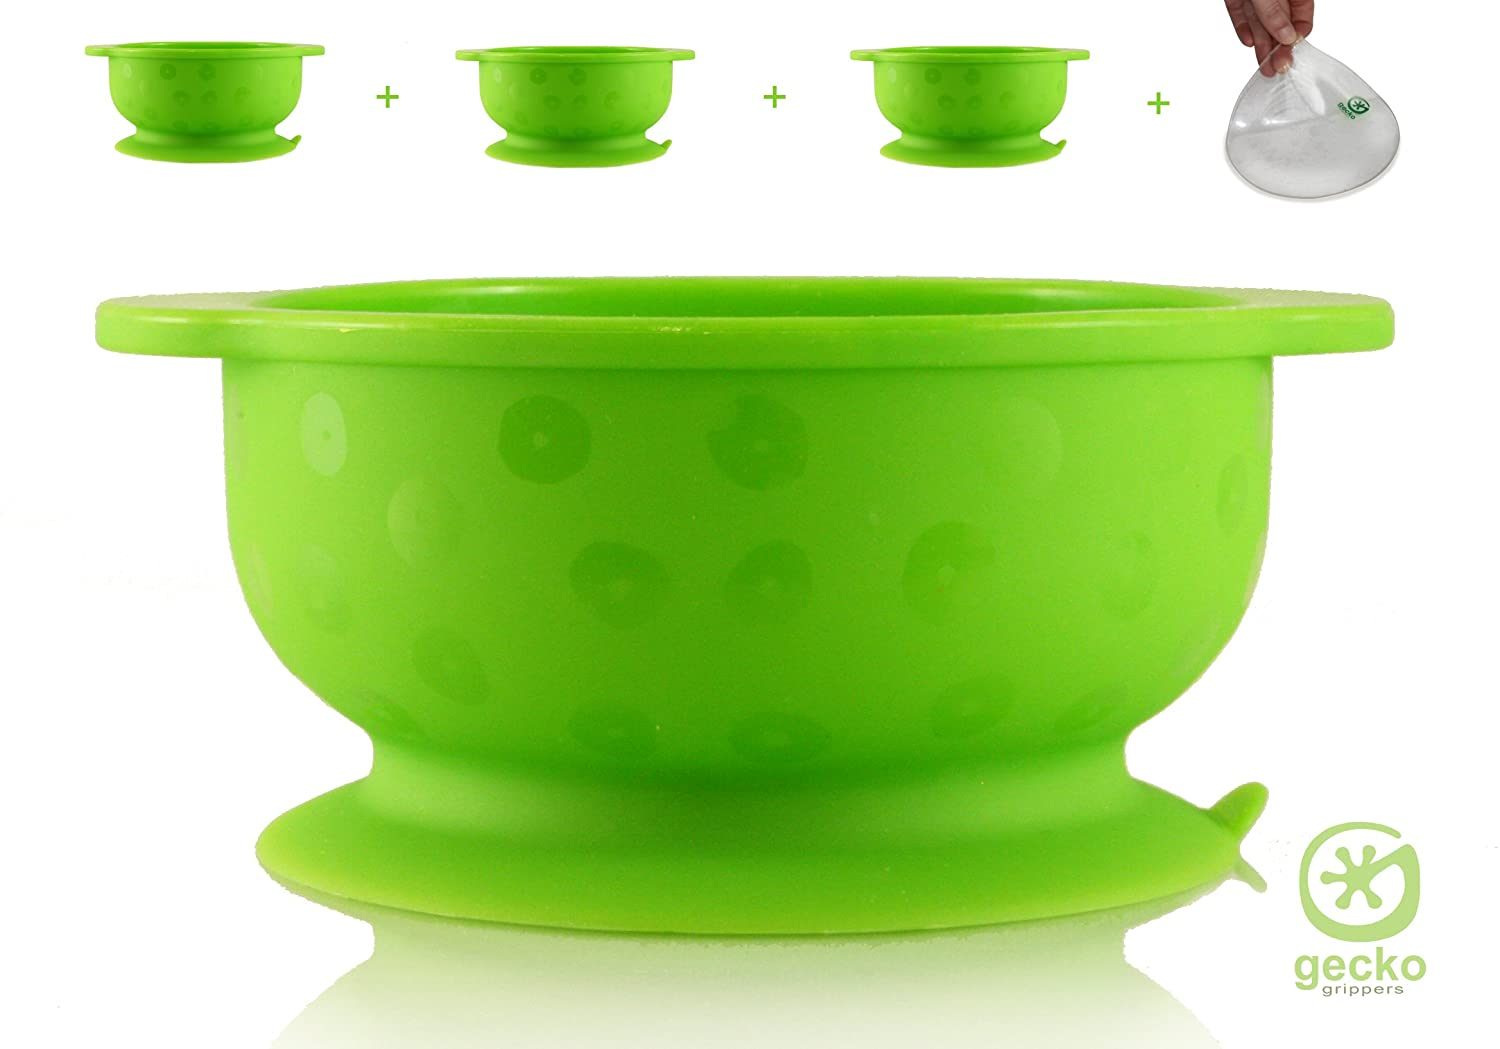 STRONGEST Suction Bowls - 3 x Baby Bowls + Gripper Mat - Value & Quality - Baby Toddler Weaning Self Feeding - Dishwasher, Microwave & Oven Safe